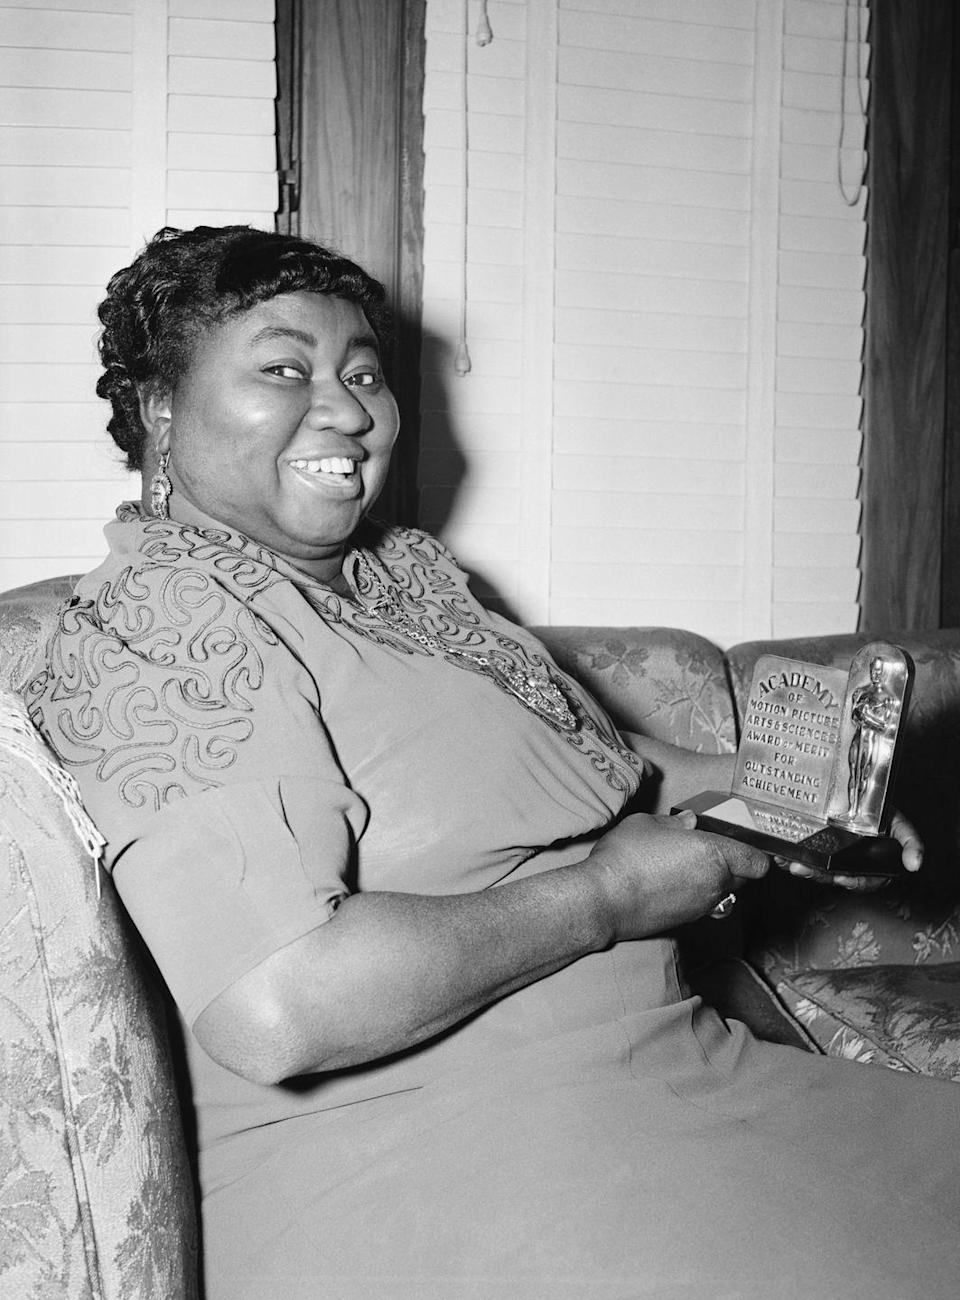 """<p>Hattie McDaniel became the <a href=""""https://www.hollywoodreporter.com/features/oscars-first-black-winner-accepted-774335"""" rel=""""nofollow noopener"""" target=""""_blank"""" data-ylk=""""slk:African American person ever to receive an Oscar"""" class=""""link rapid-noclick-resp"""">African American person ever to receive an Oscar</a> for her performance in <em><a href=""""https://www.amazon.com/Gone-Wind-Clark-Gable/dp/B002WTWQ72/ref=sr_1_3?ie=UTF8&qid=1547582421&sr=8-3&keywords=gone+with+the+wind&tag=syn-yahoo-20&ascsubtag=%5Bartid%7C10055.g.5148%5Bsrc%7Cyahoo-us"""" rel=""""nofollow noopener"""" target=""""_blank"""" data-ylk=""""slk:Gone With the Wind"""" class=""""link rapid-noclick-resp"""">Gone With the Wind</a></em>. But producers had to convince the hotel hosting the Academy Awards to even let McDaniel attend the ceremony. She was allowed in, but she had to sit at a segregated table away from her co-stars. </p>"""